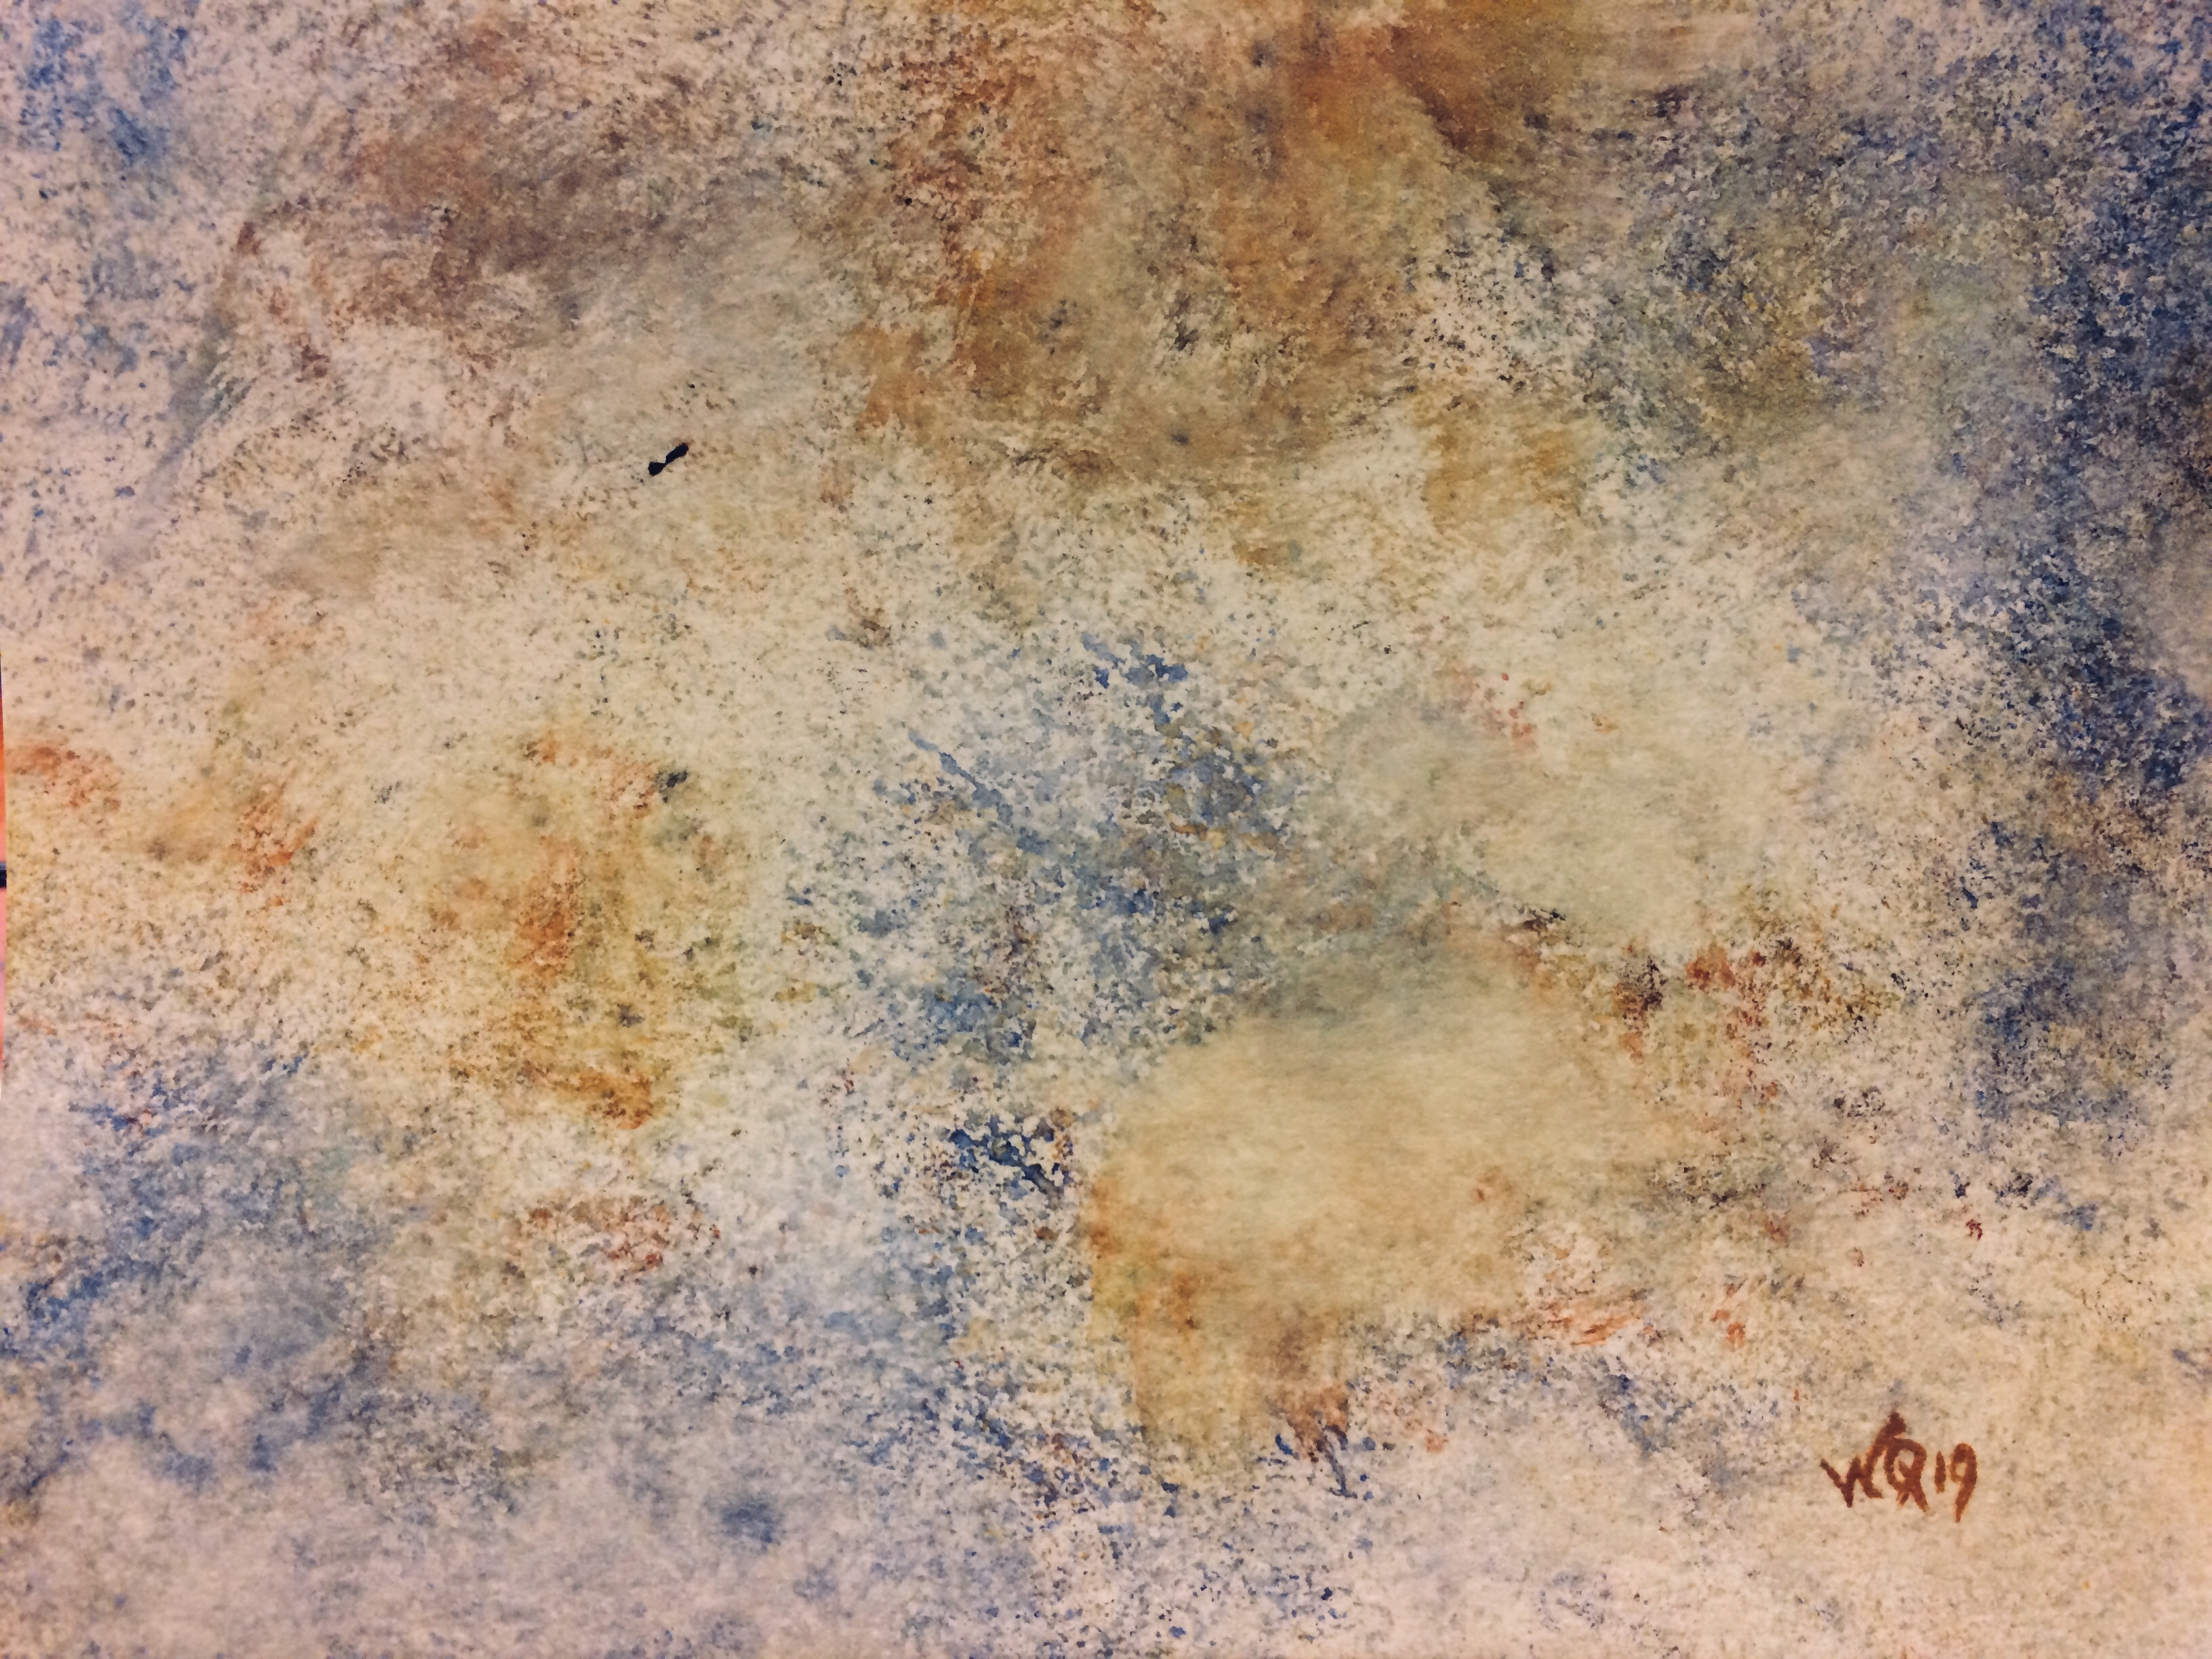 watercolour painting with sponges, blues, browns, beiges.